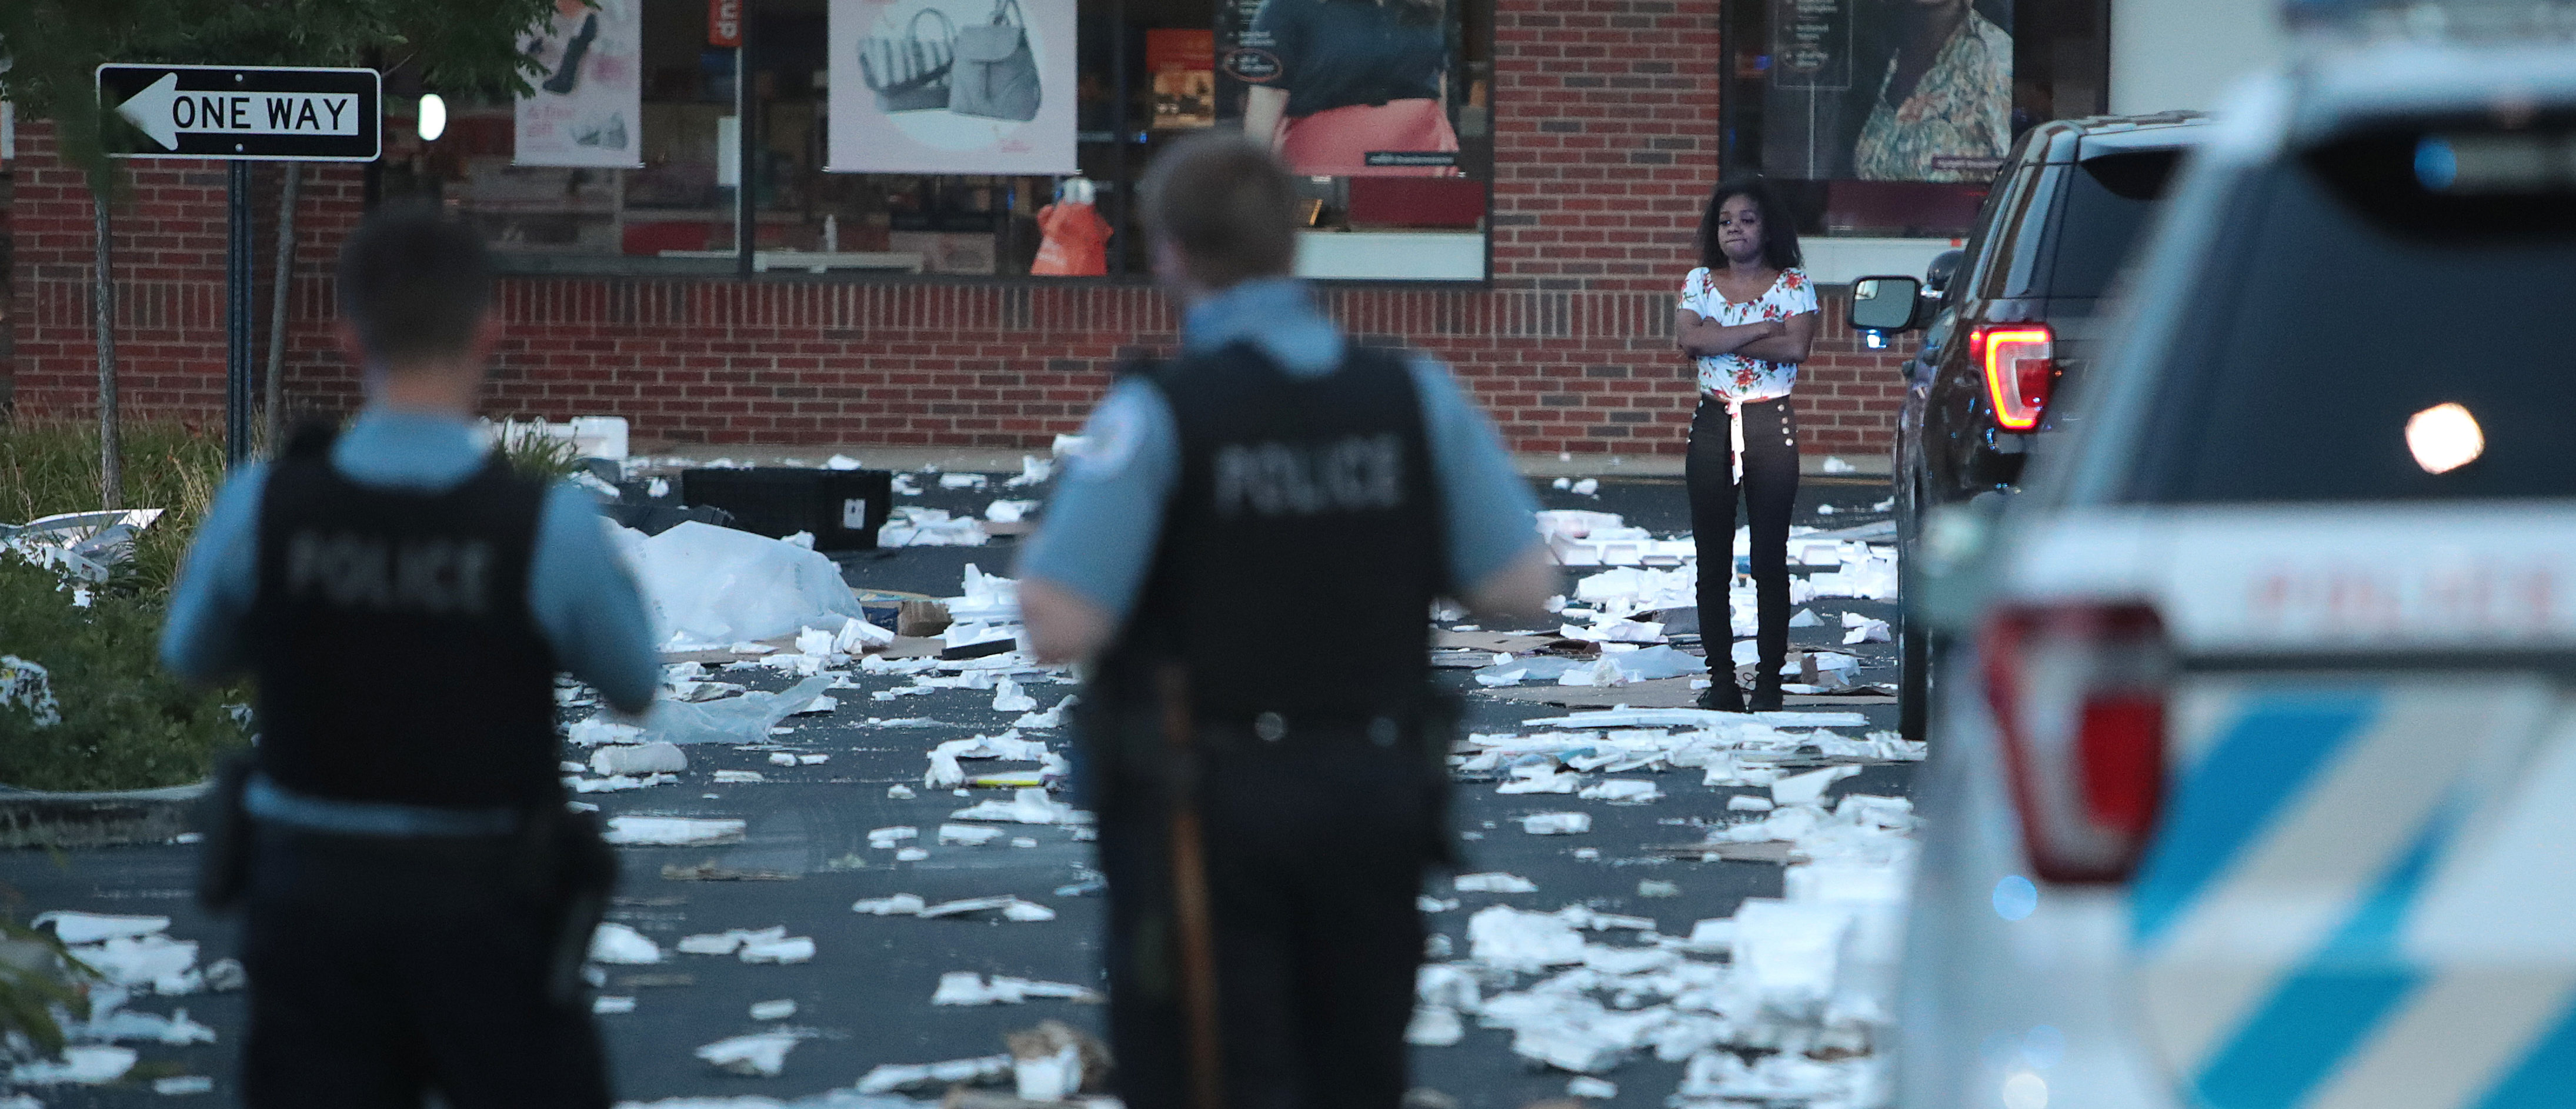 A person stands near a looted store after parts of the city had widespread looting and vandalism, on August 10, 2020 in Chicago, Illinois. (Scott Olson/Getty Images)